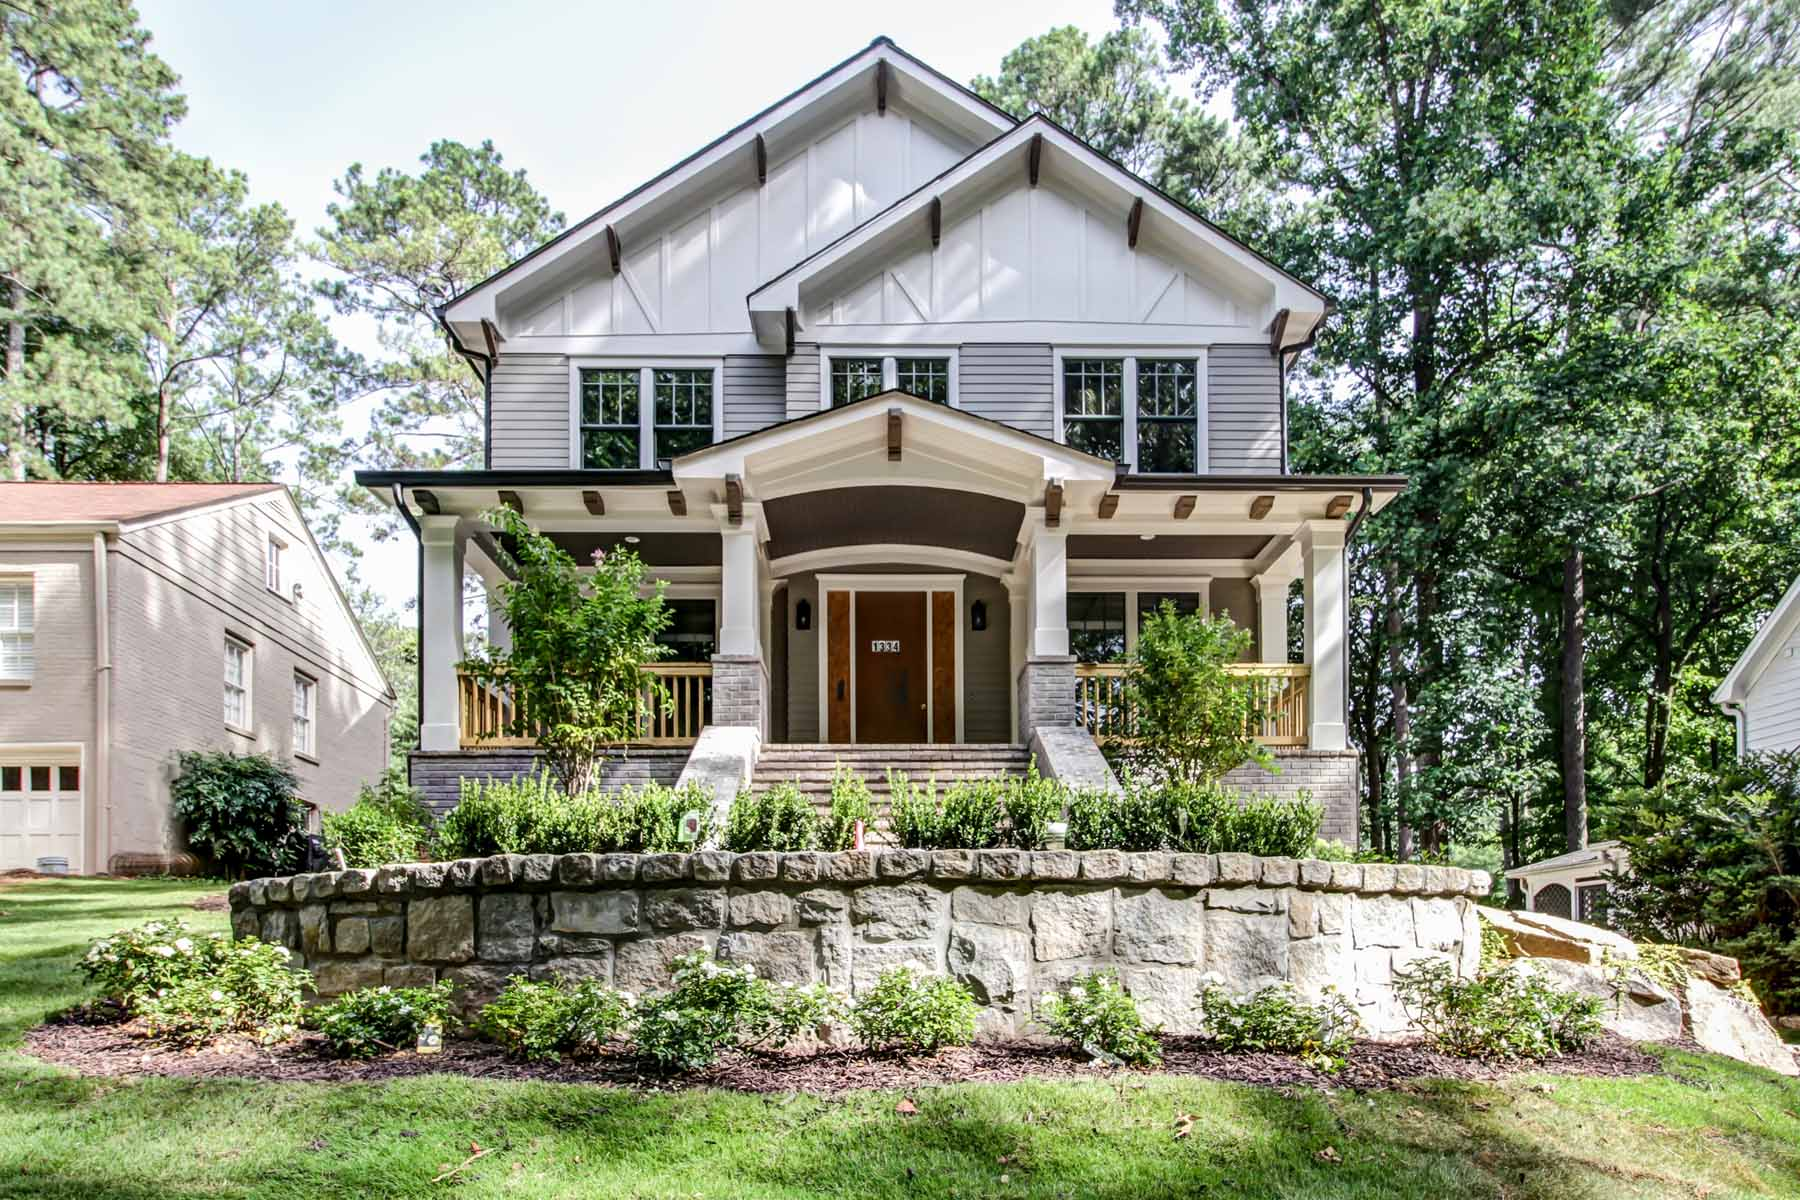 Single Family Home for Sale at Quality New Construction 1334 Beech Valley Road Morningside, Atlanta, Georgia 30306 United States